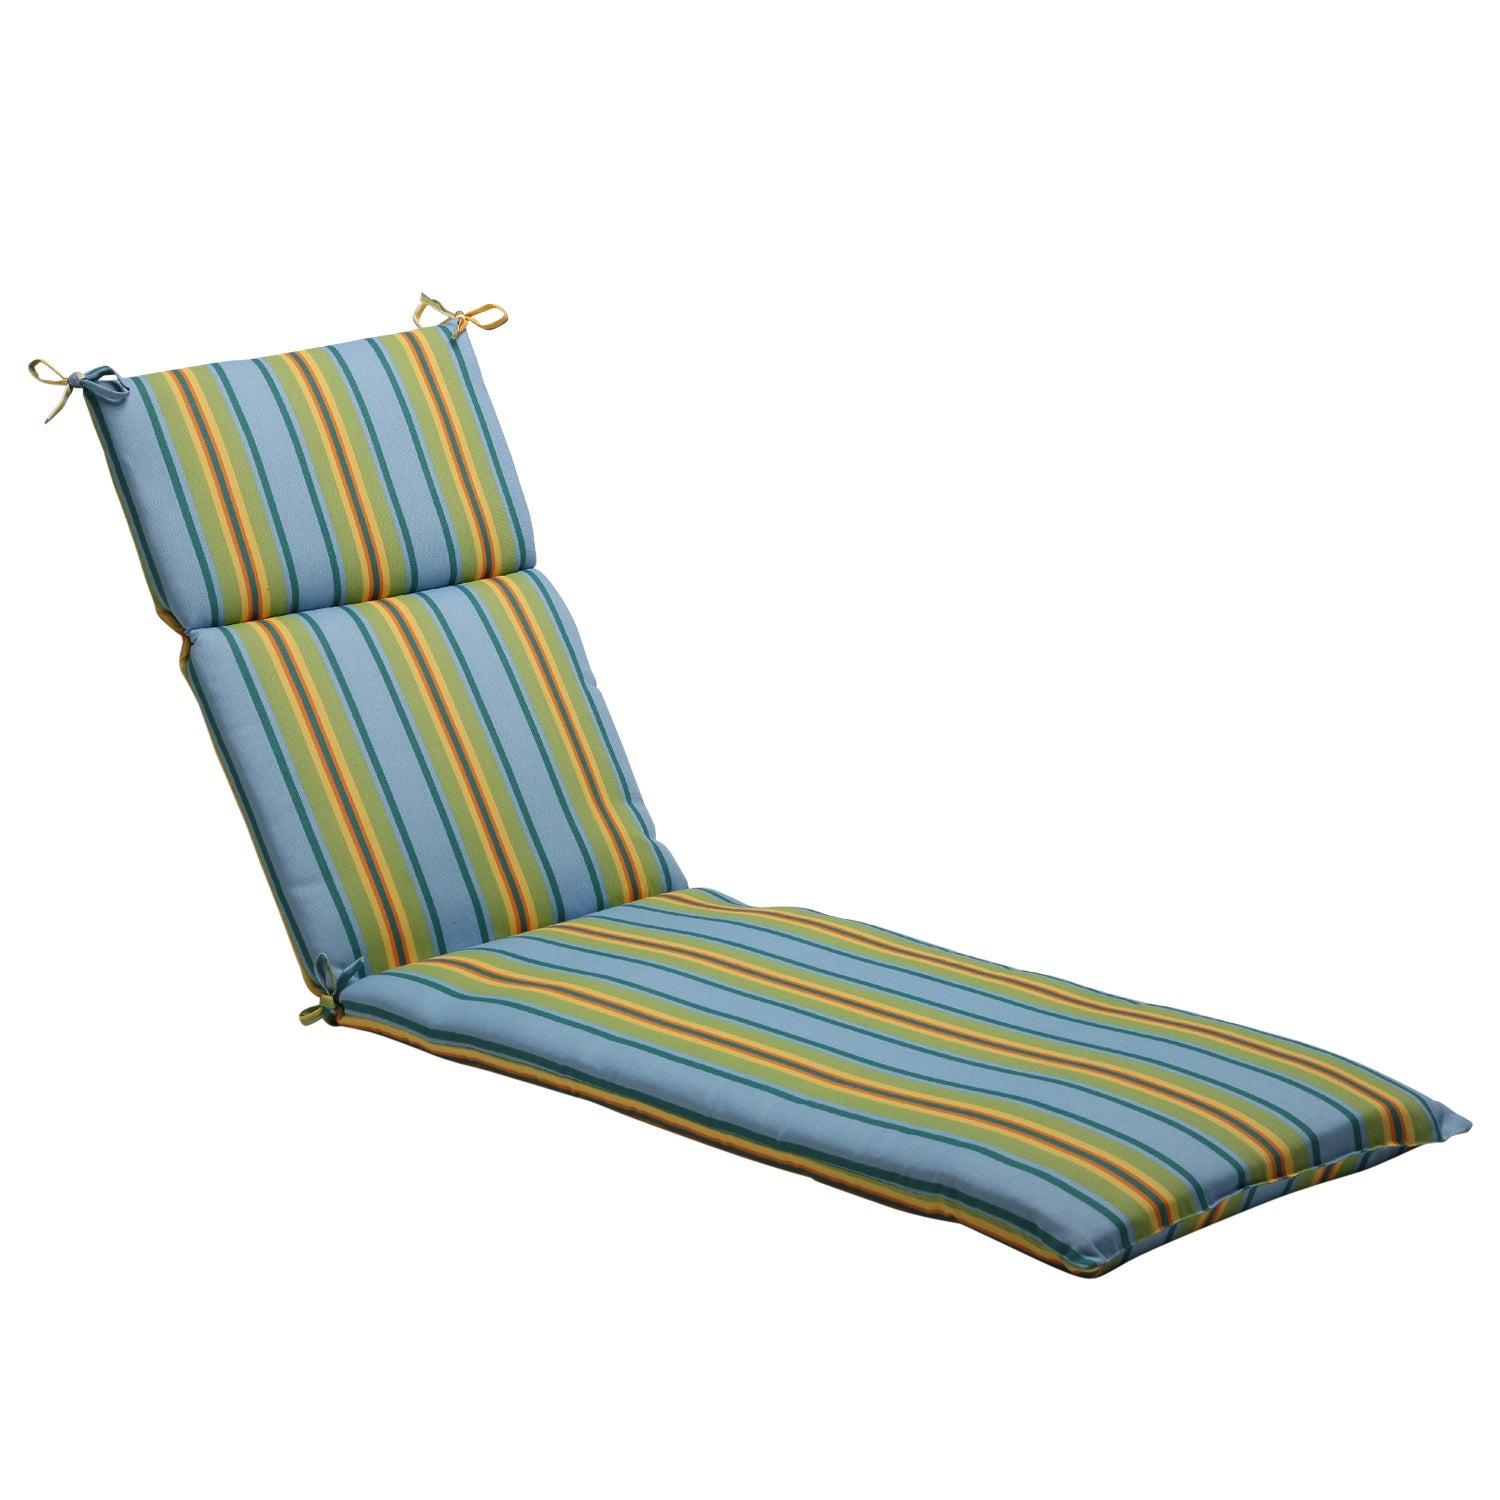 Pillow perfect blue green striped outdoor chaise lounge for Blue chaise lounge cushions